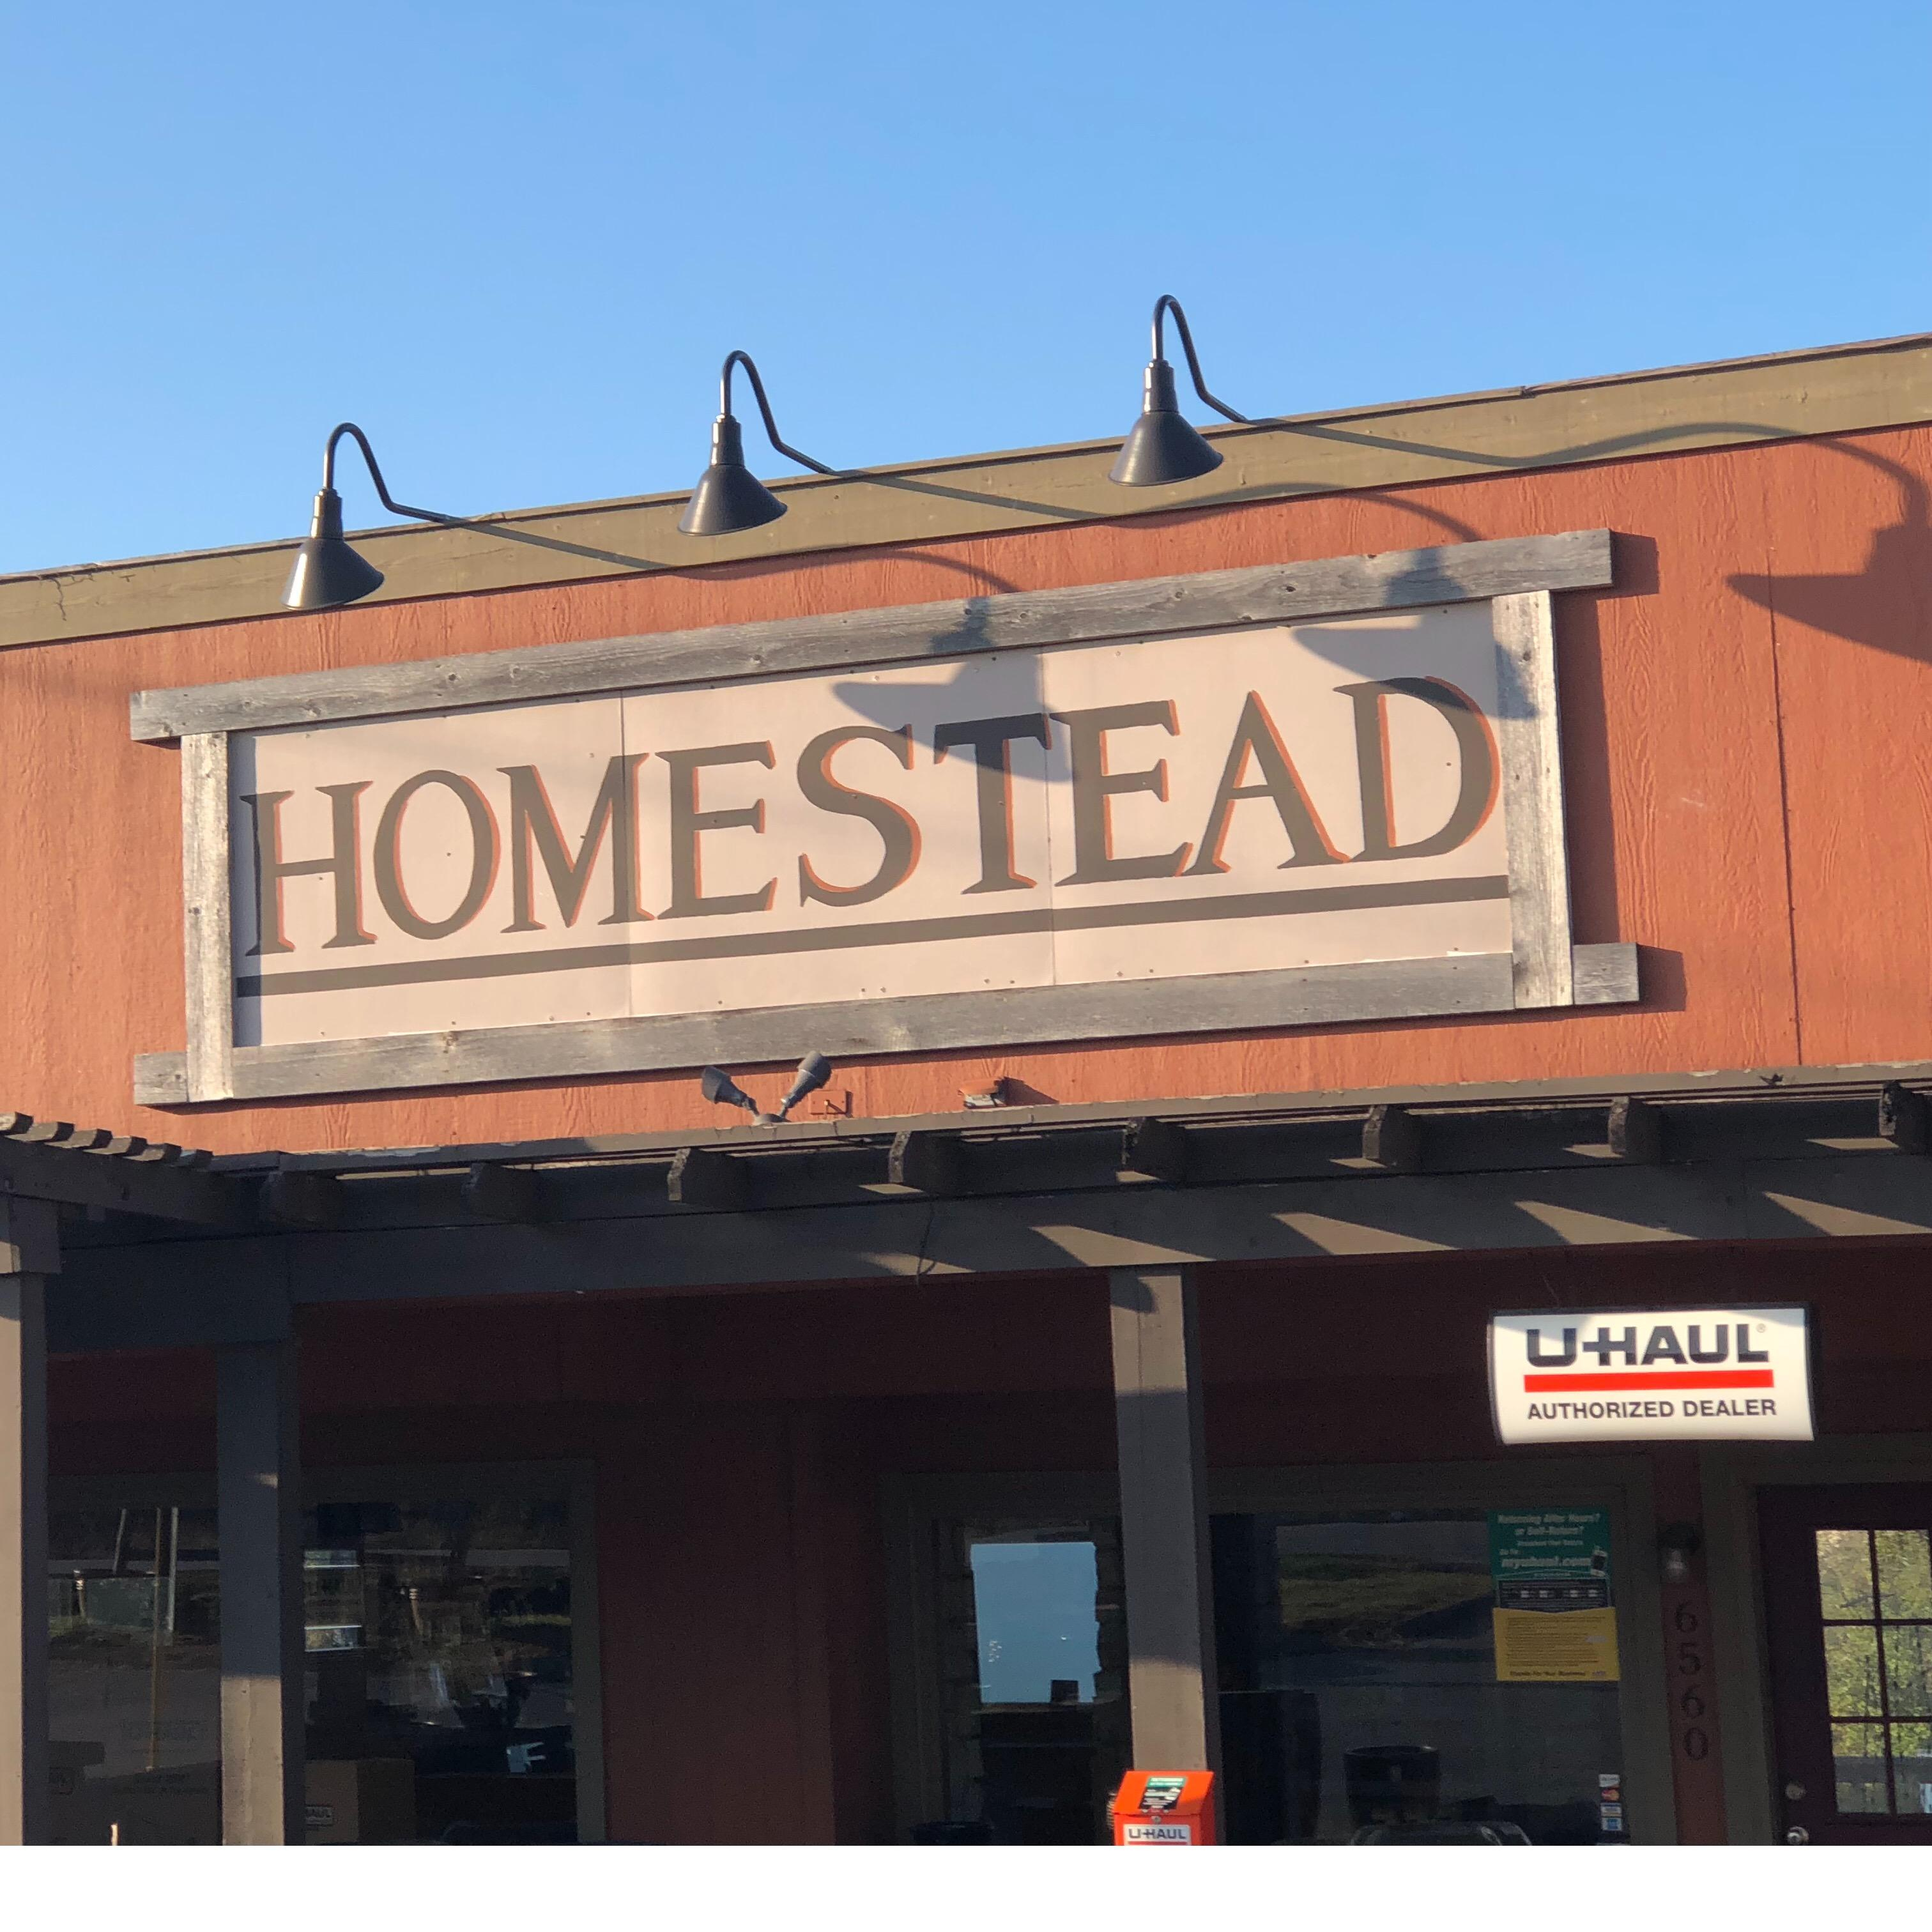 Homestead Landscaping Materials